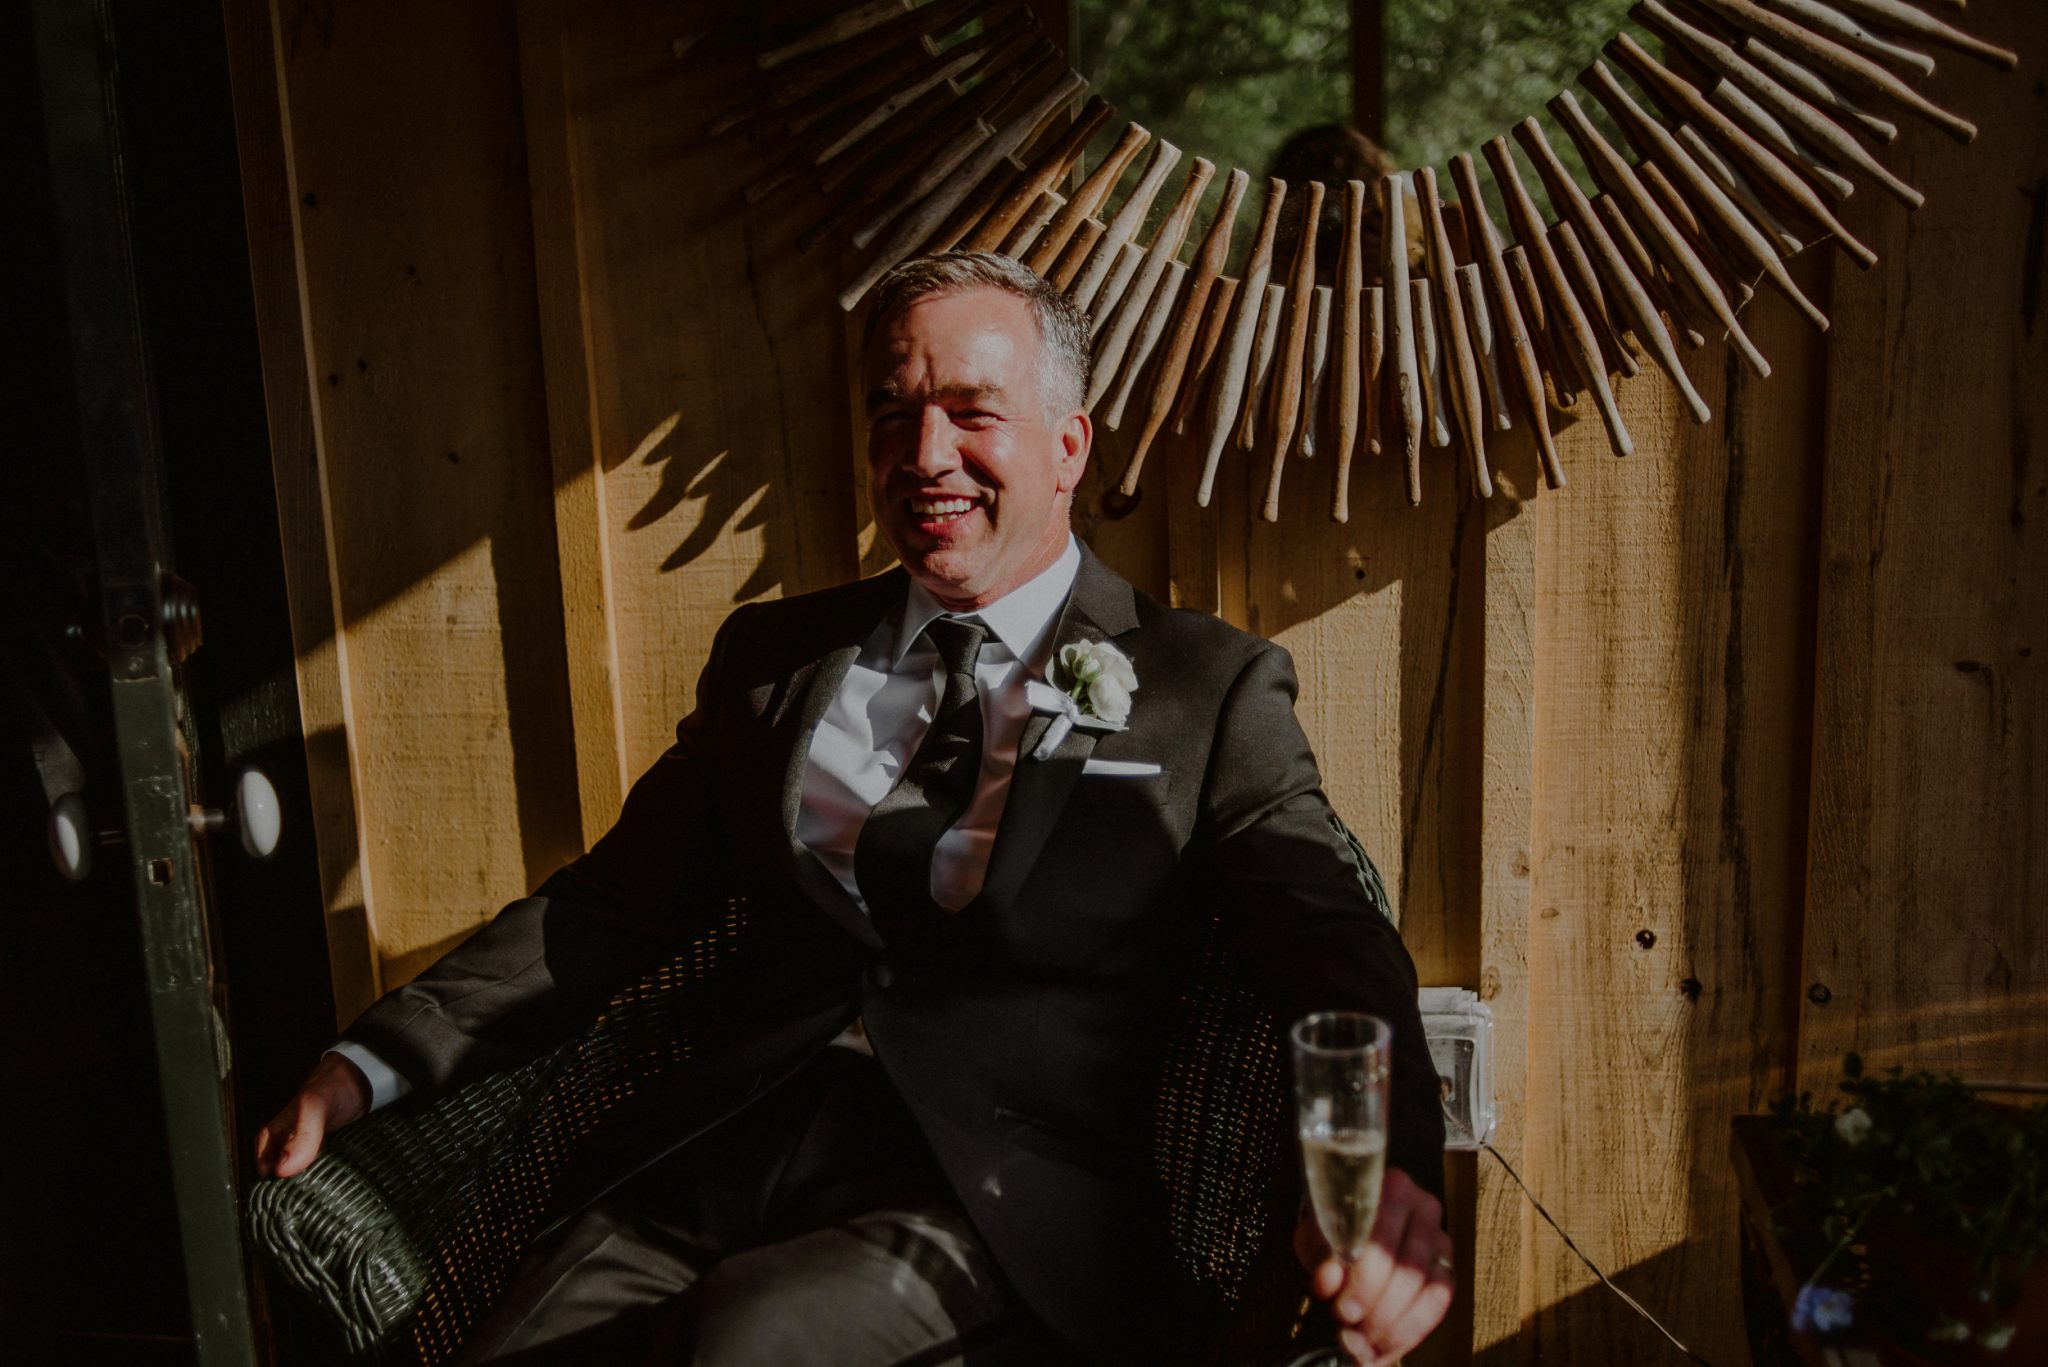 candid photo of relaxed groom